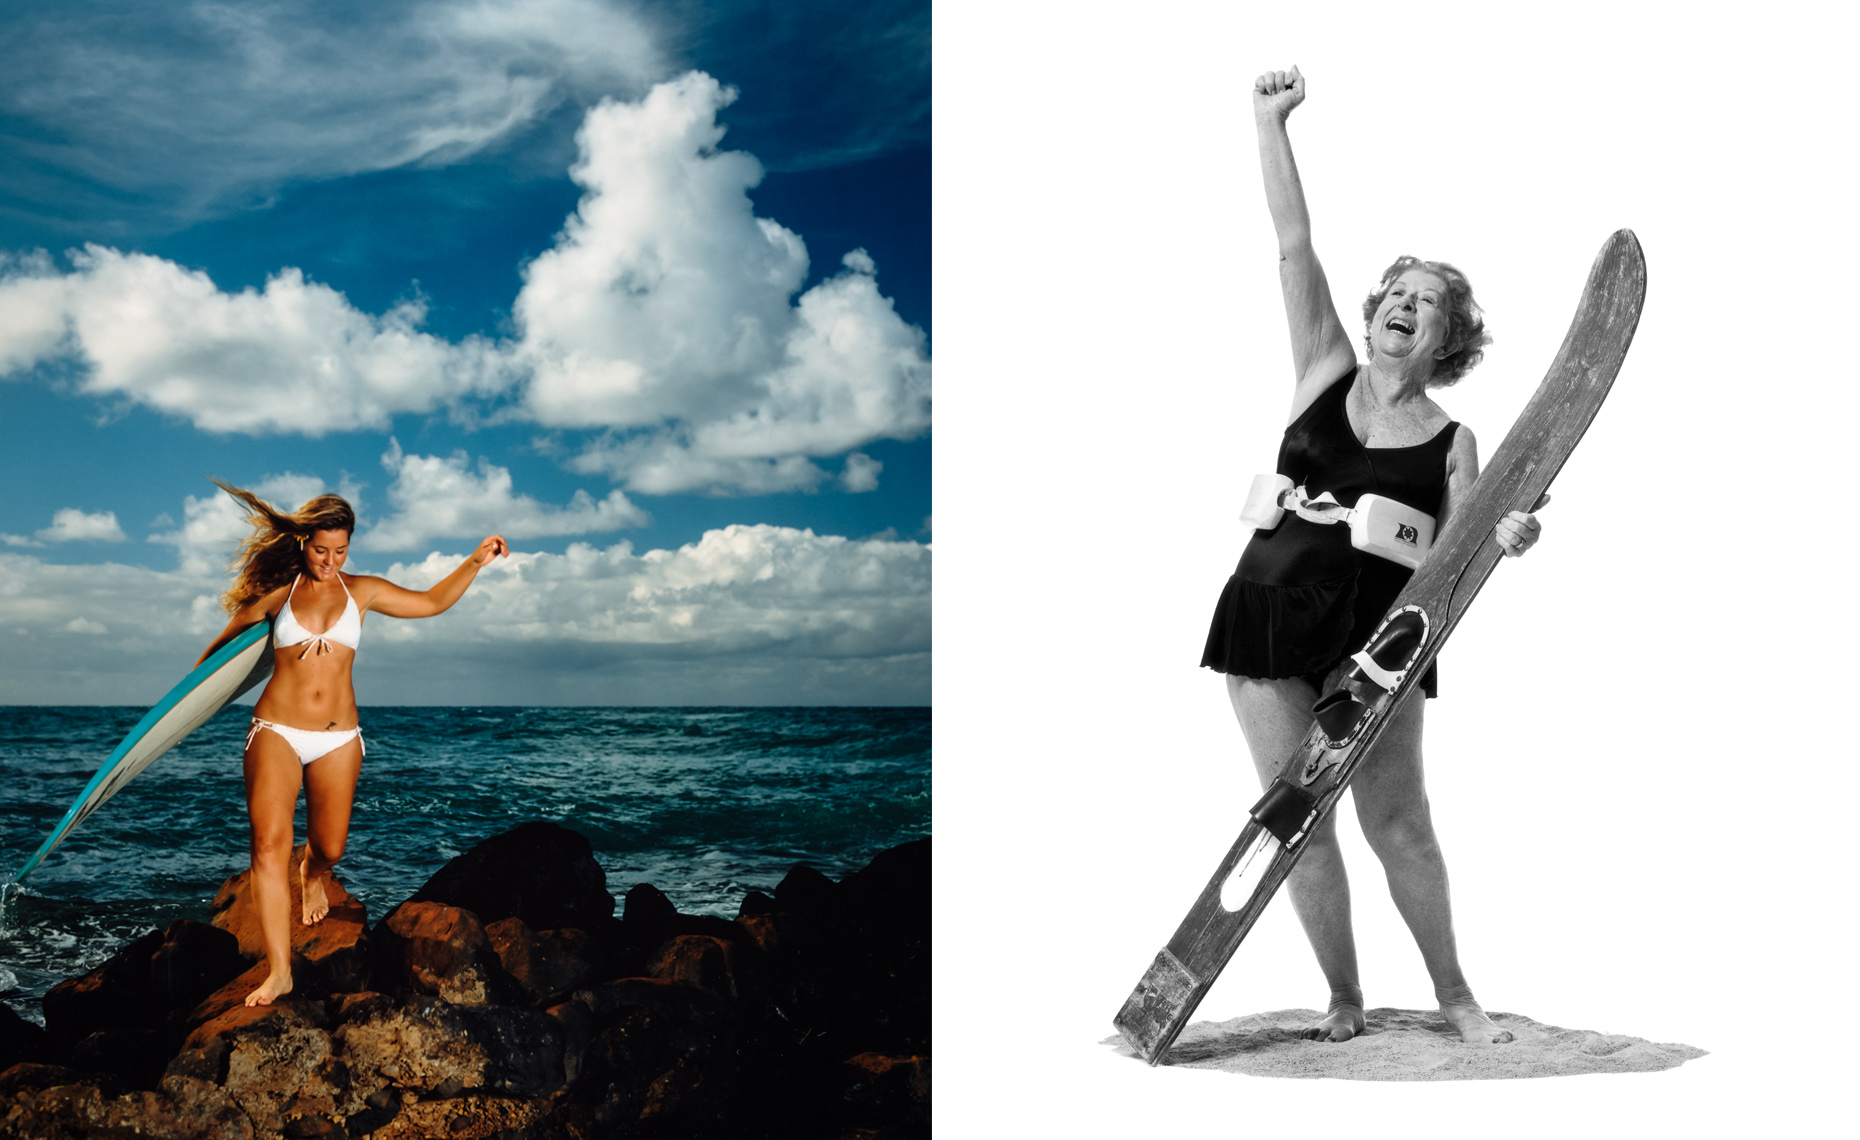 A young woman walks with her surfboard near the surf, and a senior woman stands exultant with her fist in the air  in studio with her feather glide waterski